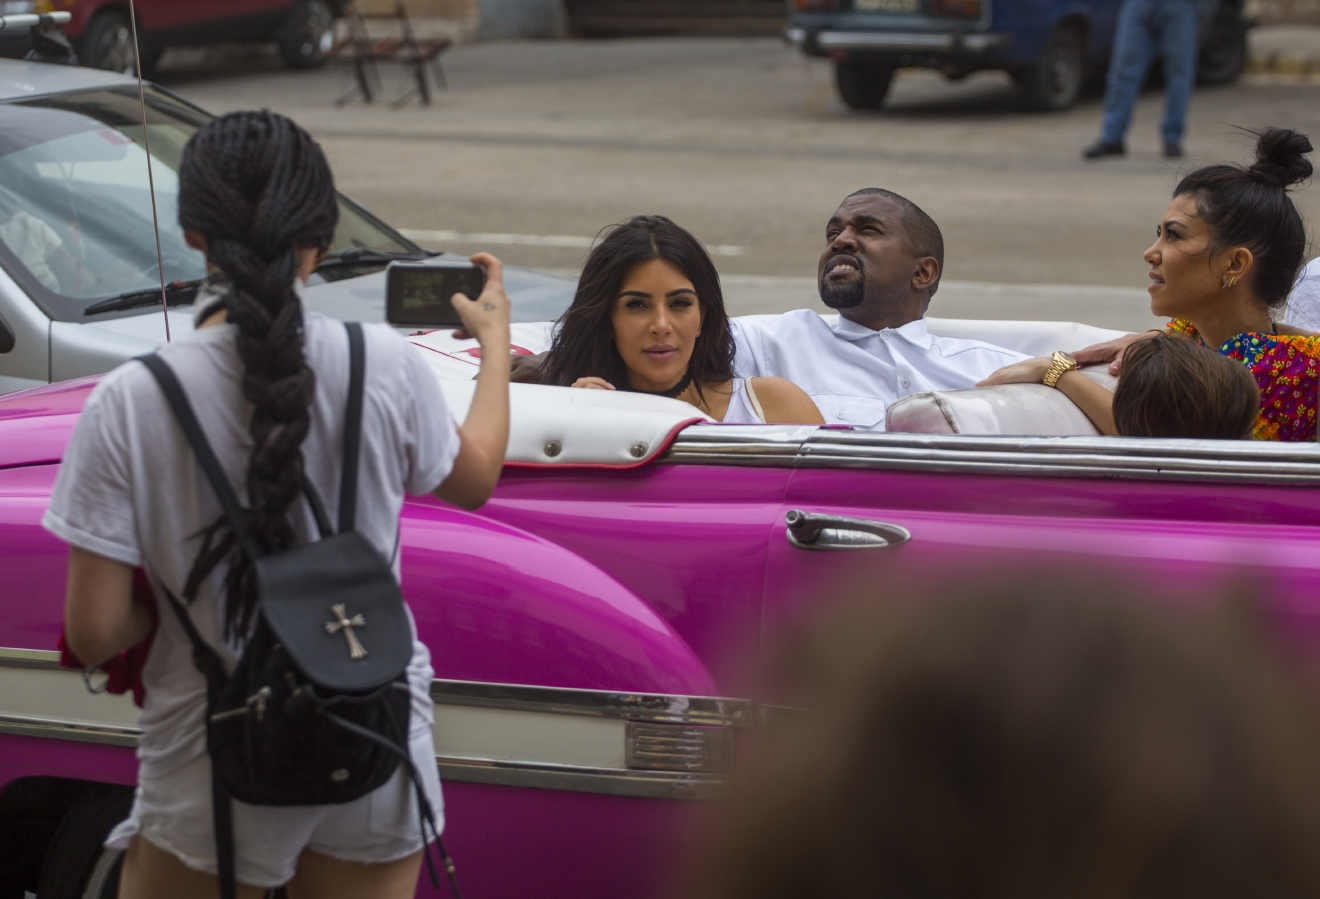 A woman uses her cellphone to take a picture American reality-show star Kim Kardashian West, center, and her husband Kayne West as they ride on a classic car along the streets of Havana, Cuba, Wednesday, May 4, 2016. Rap superstar Kayne West, his wife Kim Kardashian and members of her reality-show-star family have become the latest celebrities to visit Havana. They visited HavanaÂ?s Museum of Rum Wednesday, stepping out of a hot-pink antique American convertible as they snapped selfies and were recorded by a television crew following them around. At right is Kourtney Mary Kardashian,(AP Photo/Desmond Boylan)